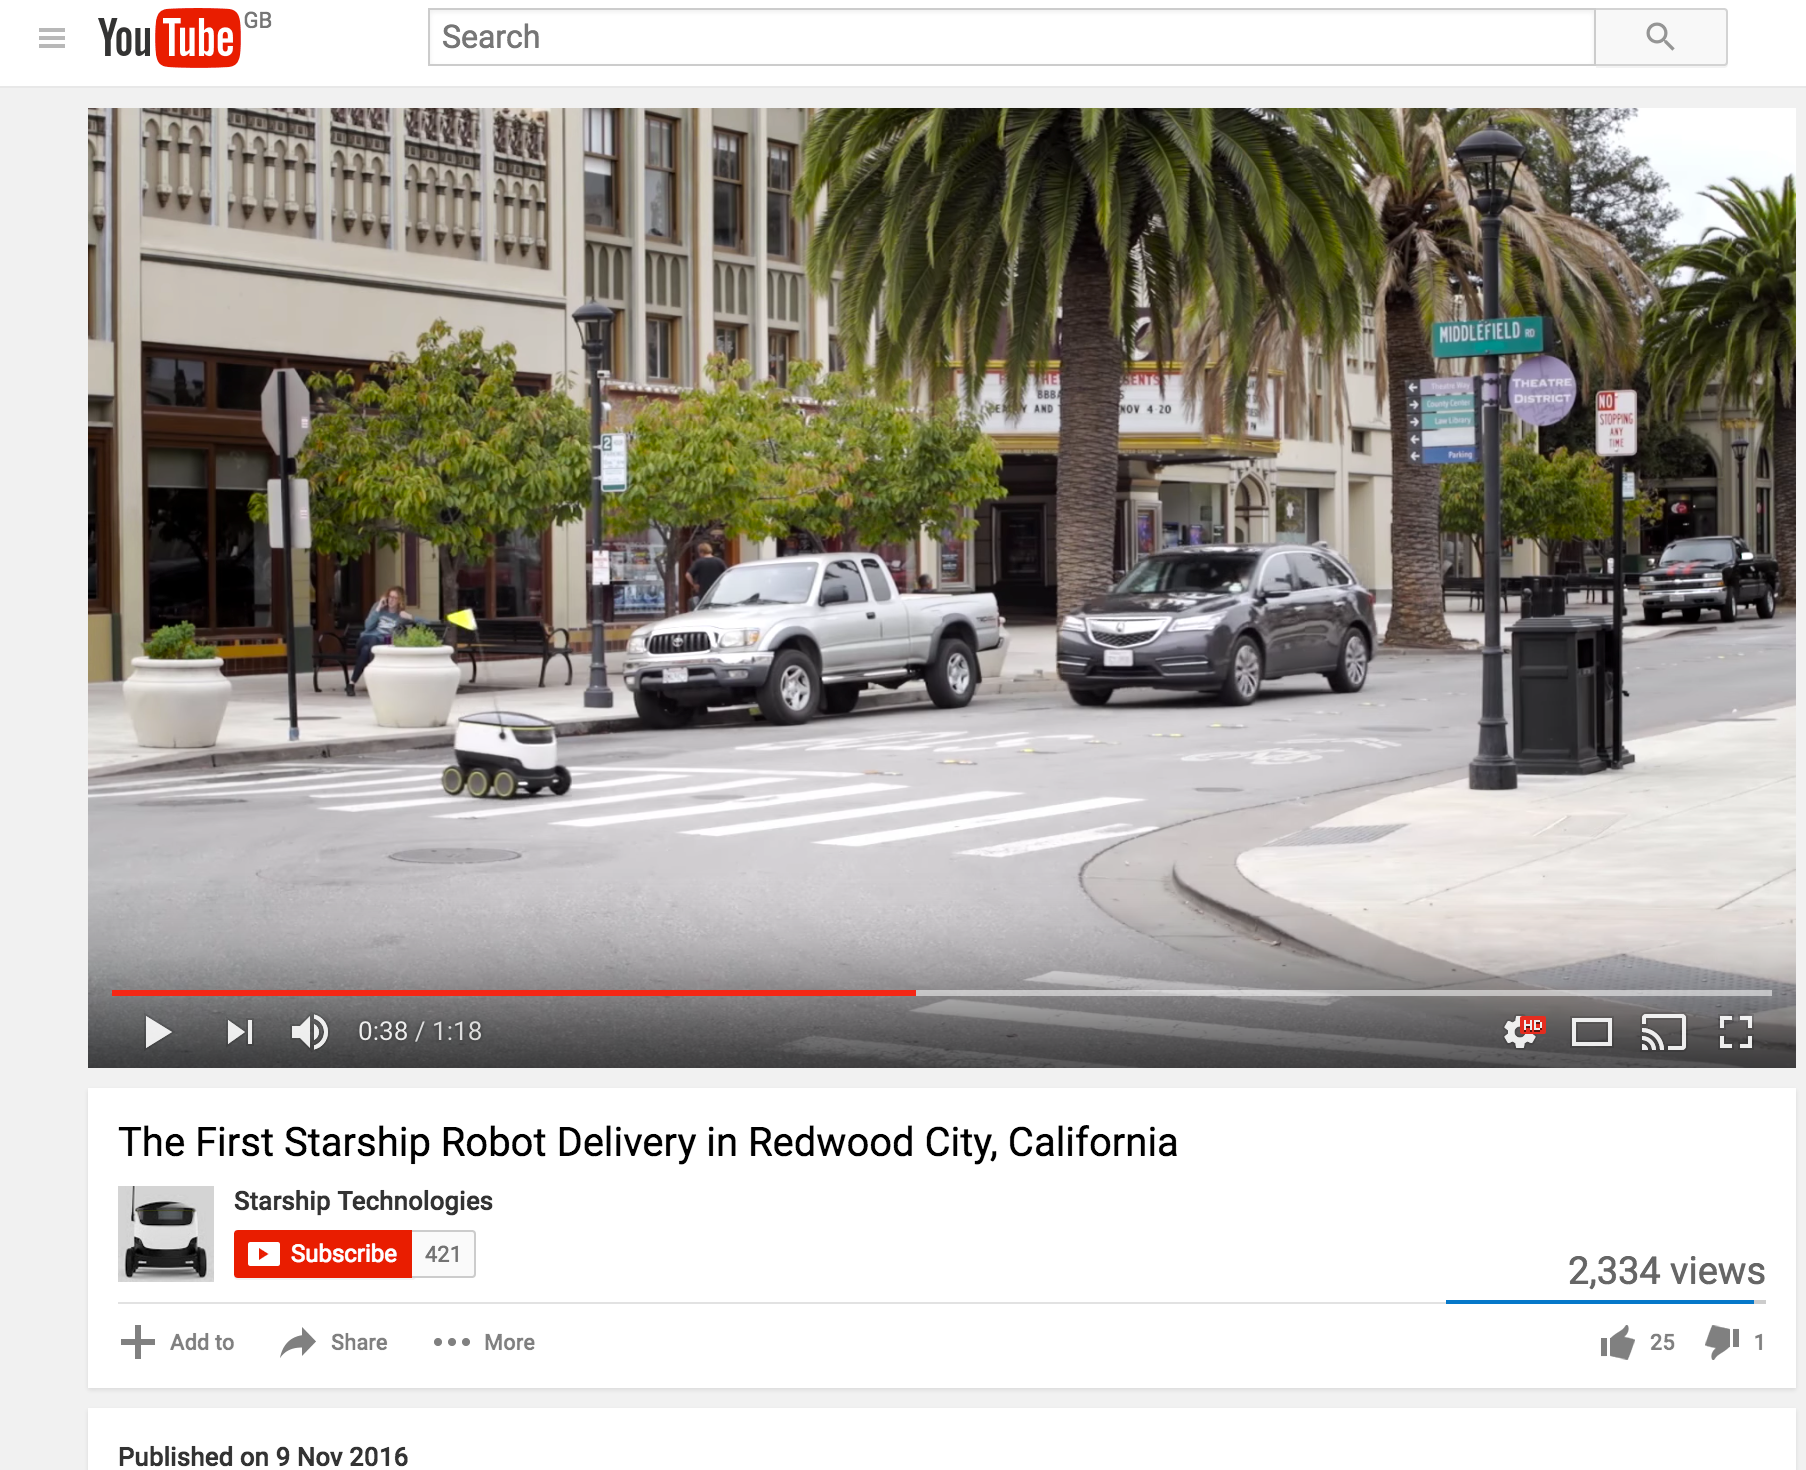 files/images/the_first_starship_robot_delivery_in_redwood_city__california_-_youtube1.png